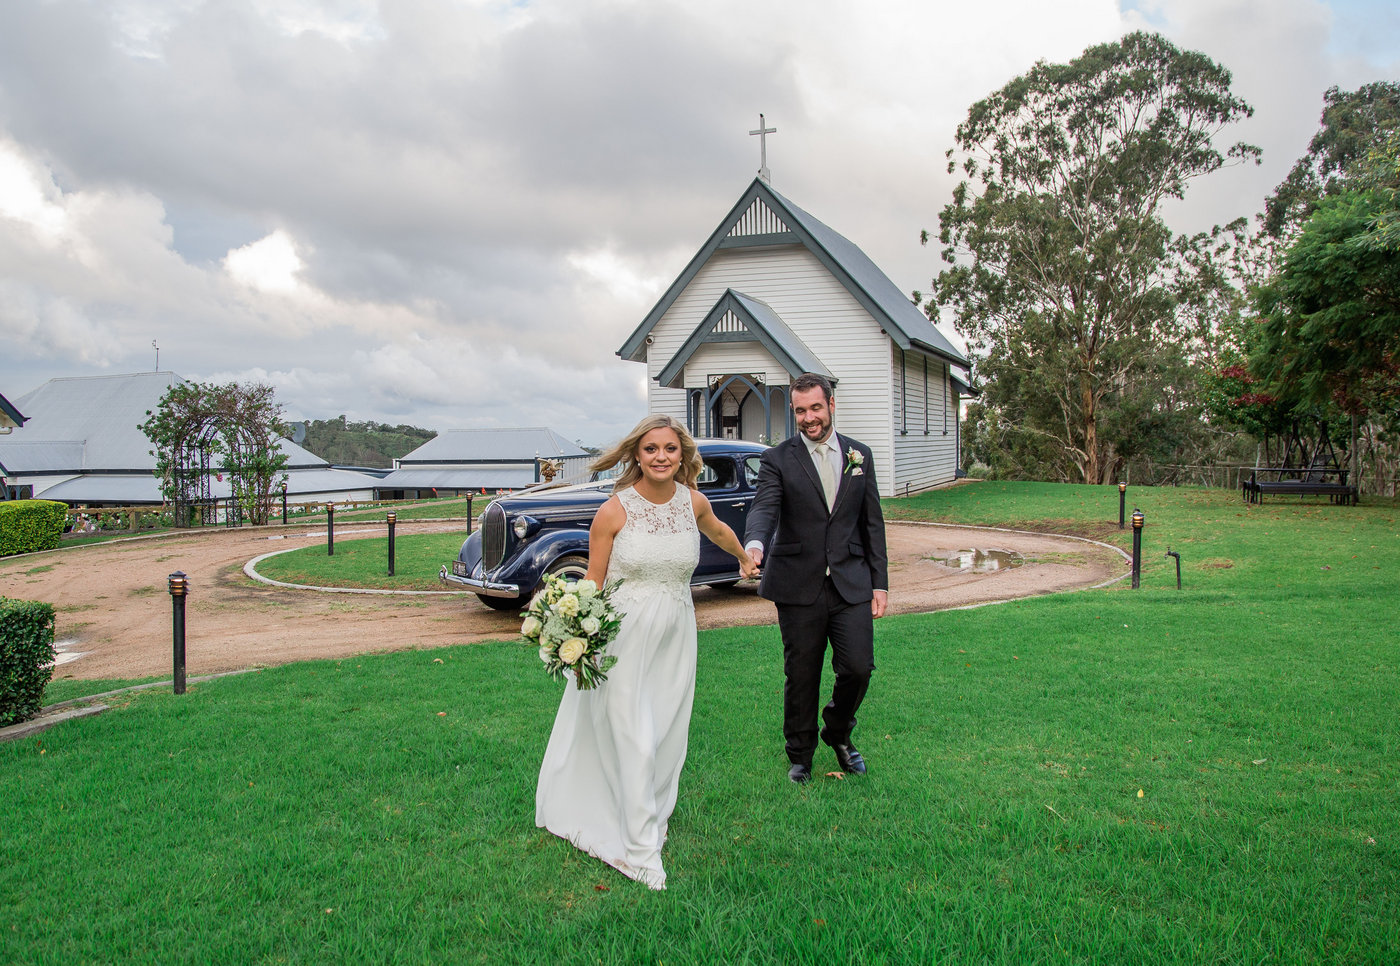 Wedding Photography couple at ceremony in front of church